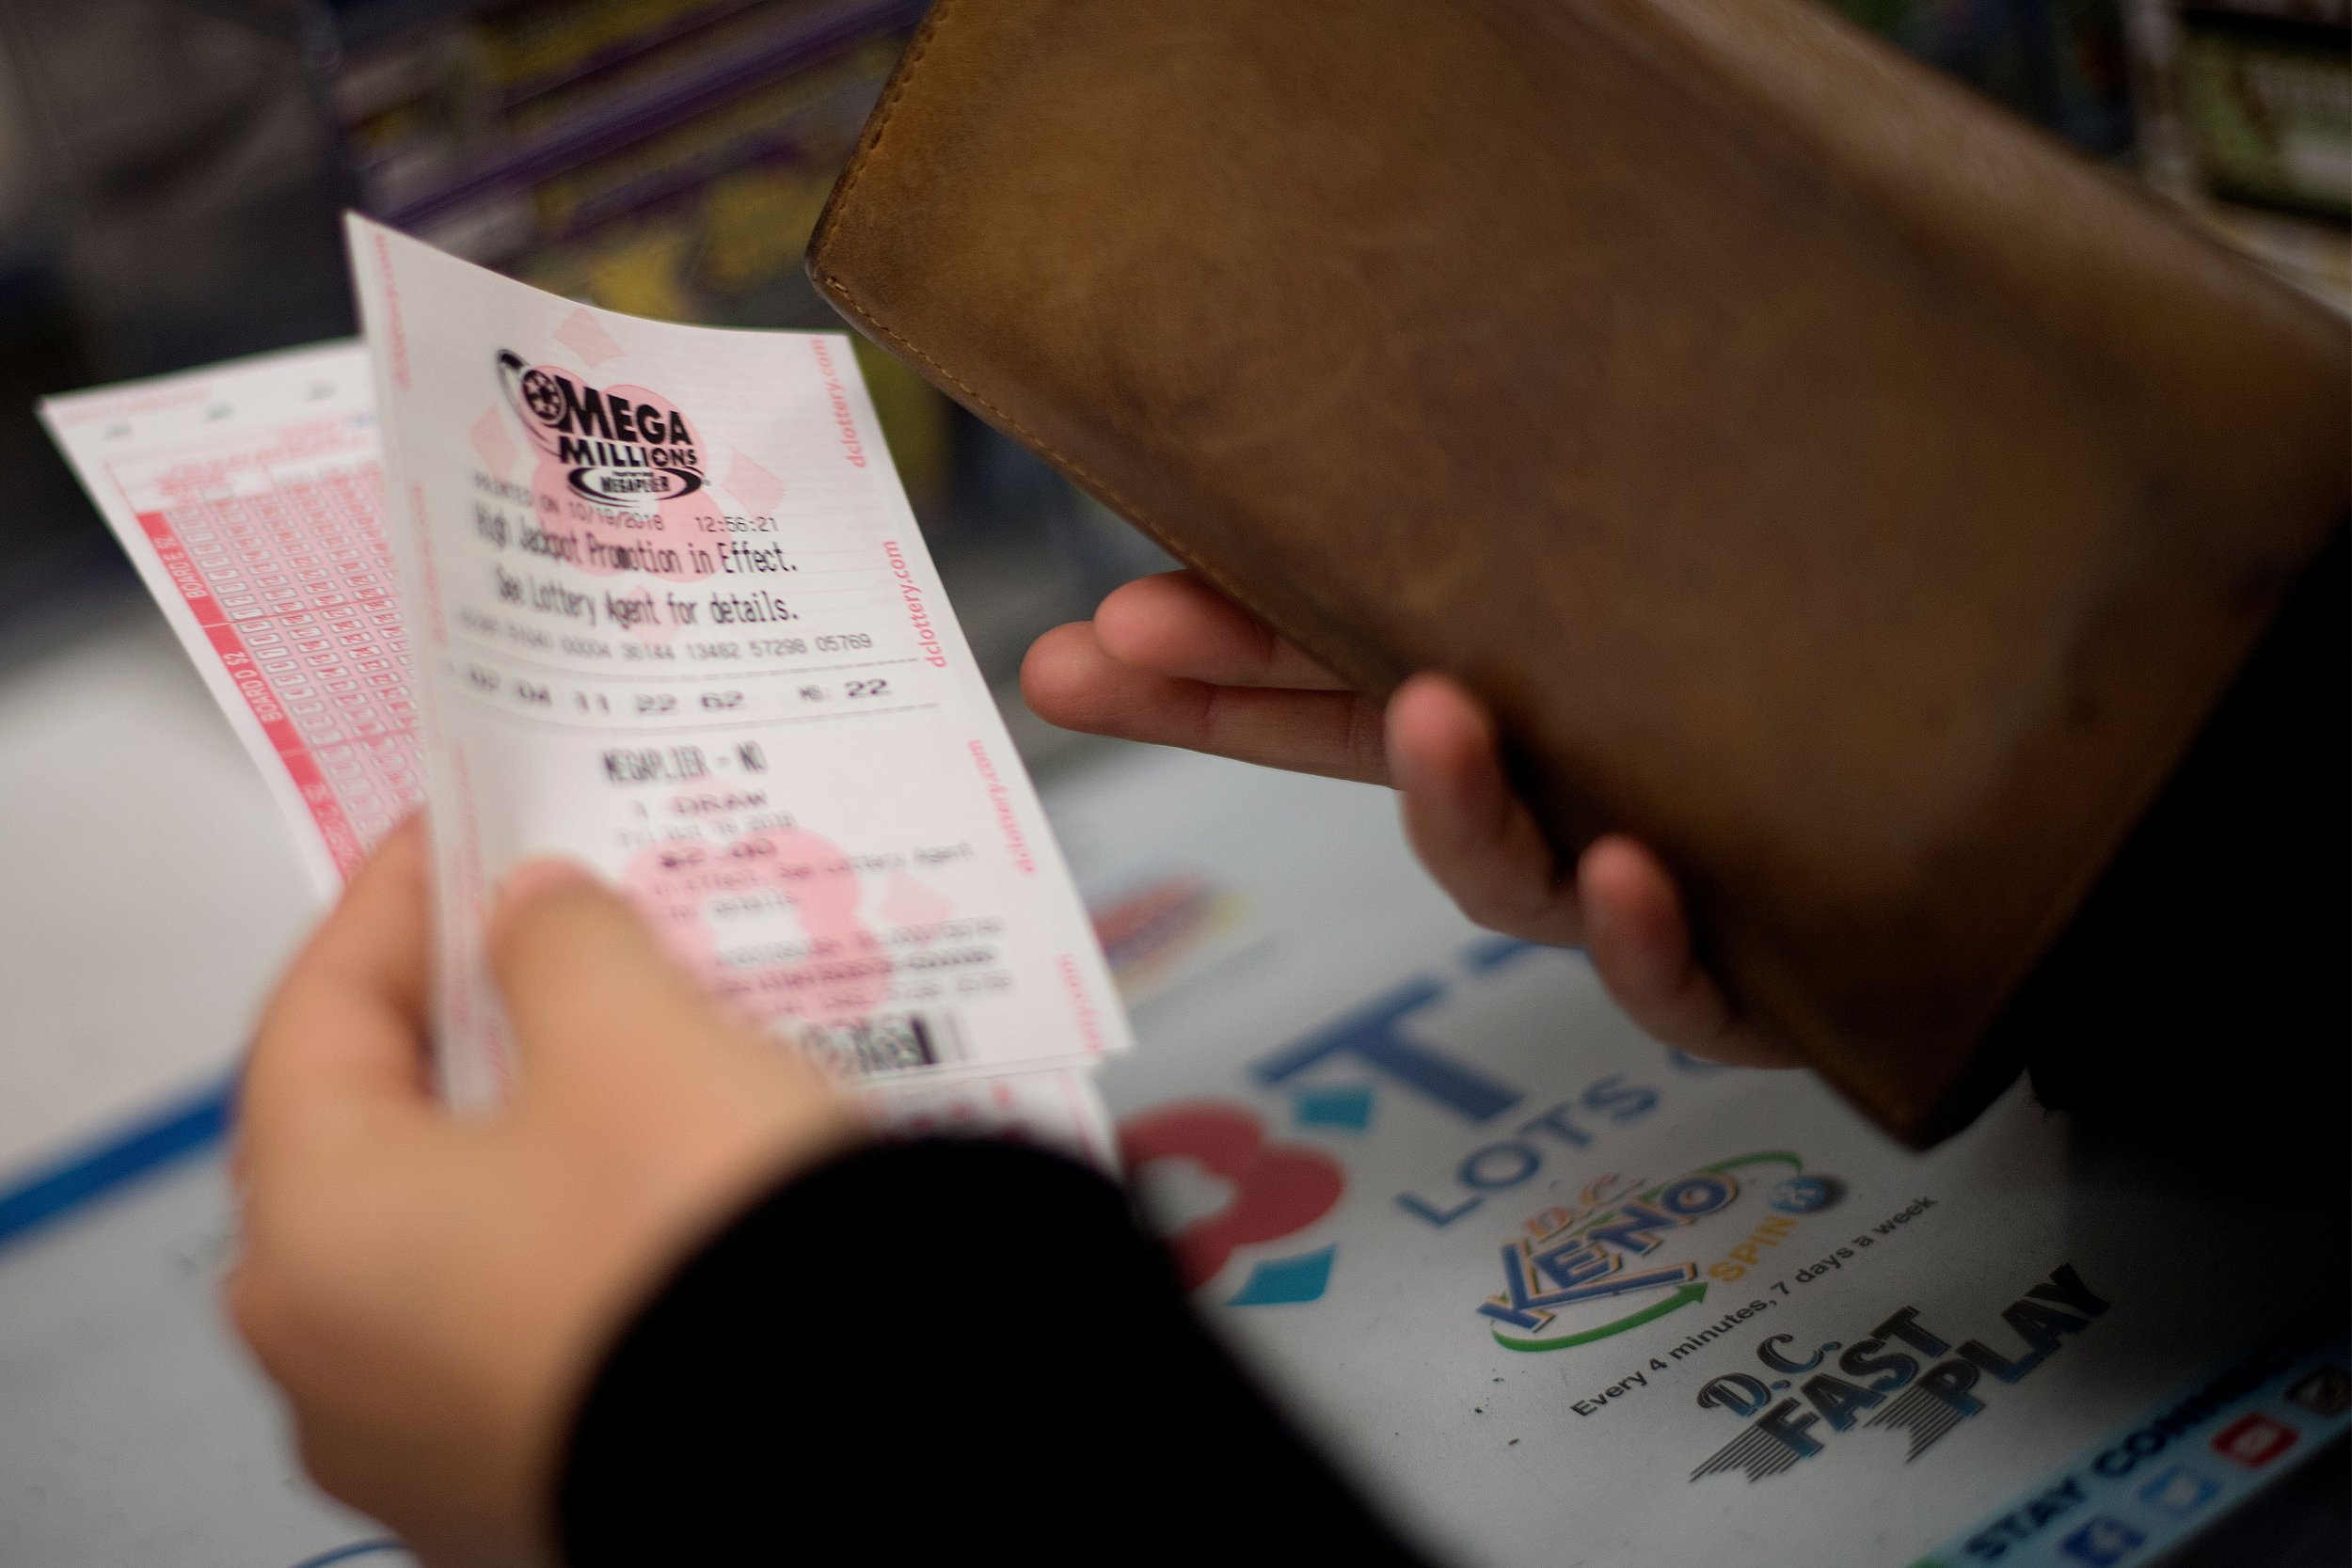 Mega Millions Cutoff Time: How Late Can You Buy Lottery